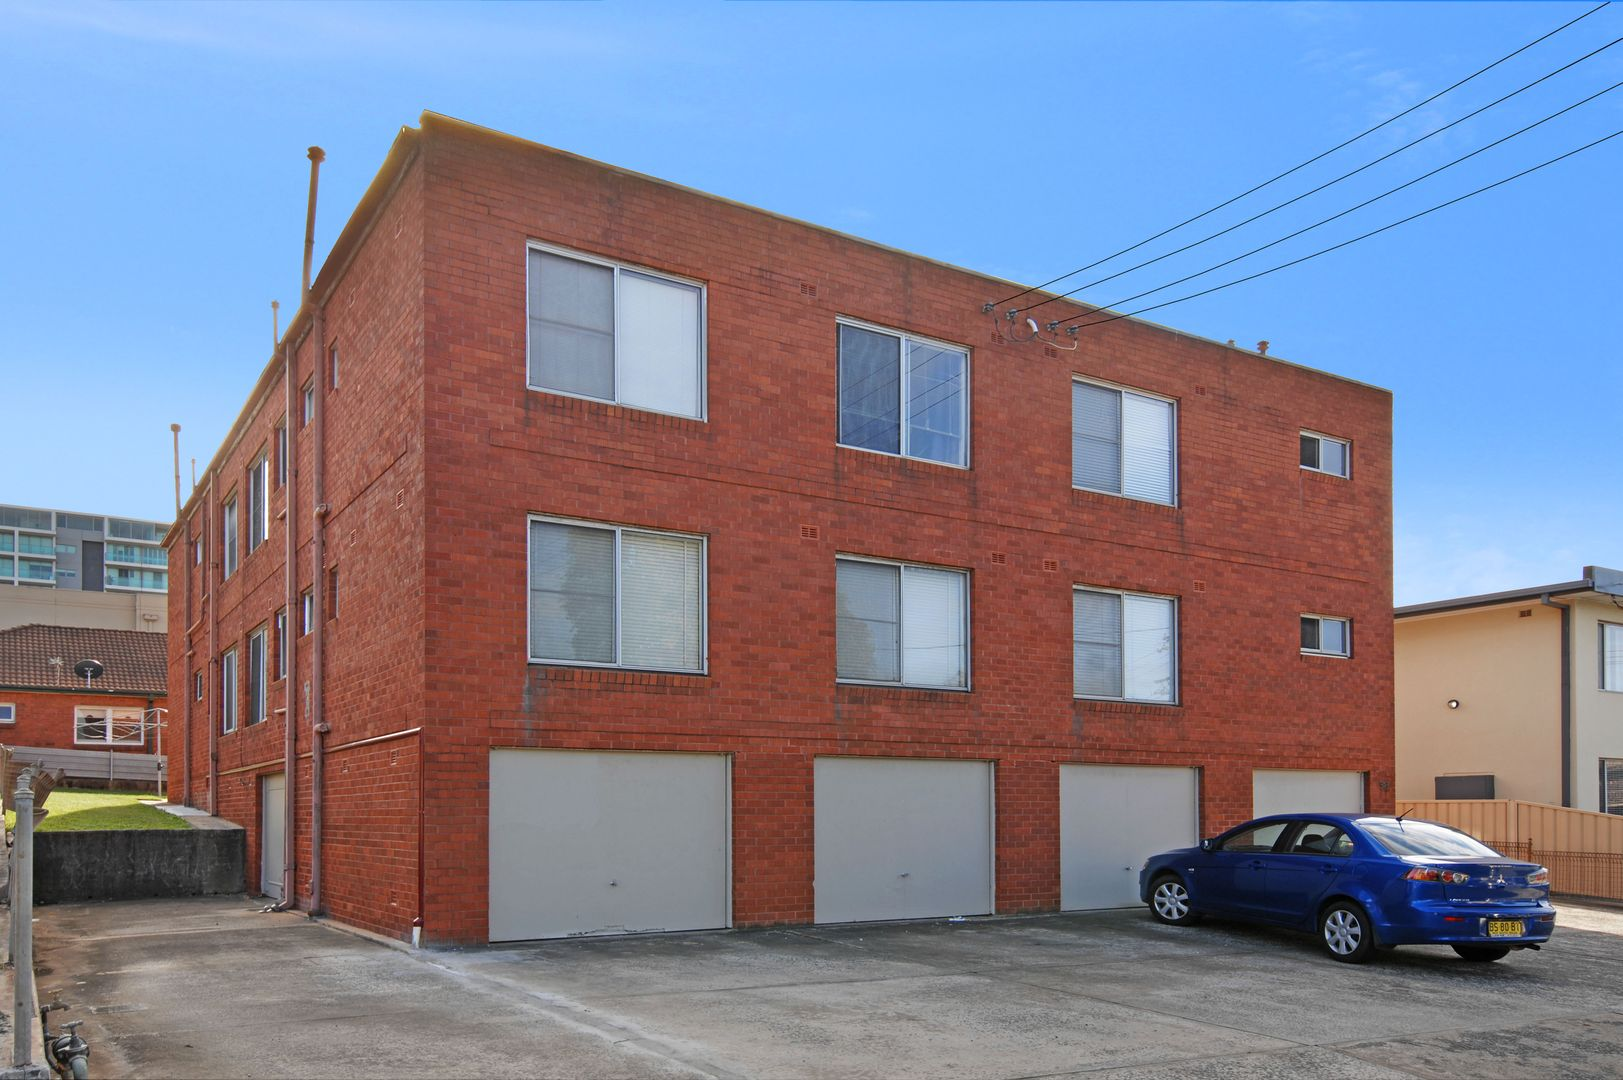 3/38 Campbell  Street, Wollongong NSW 2500, Image 0